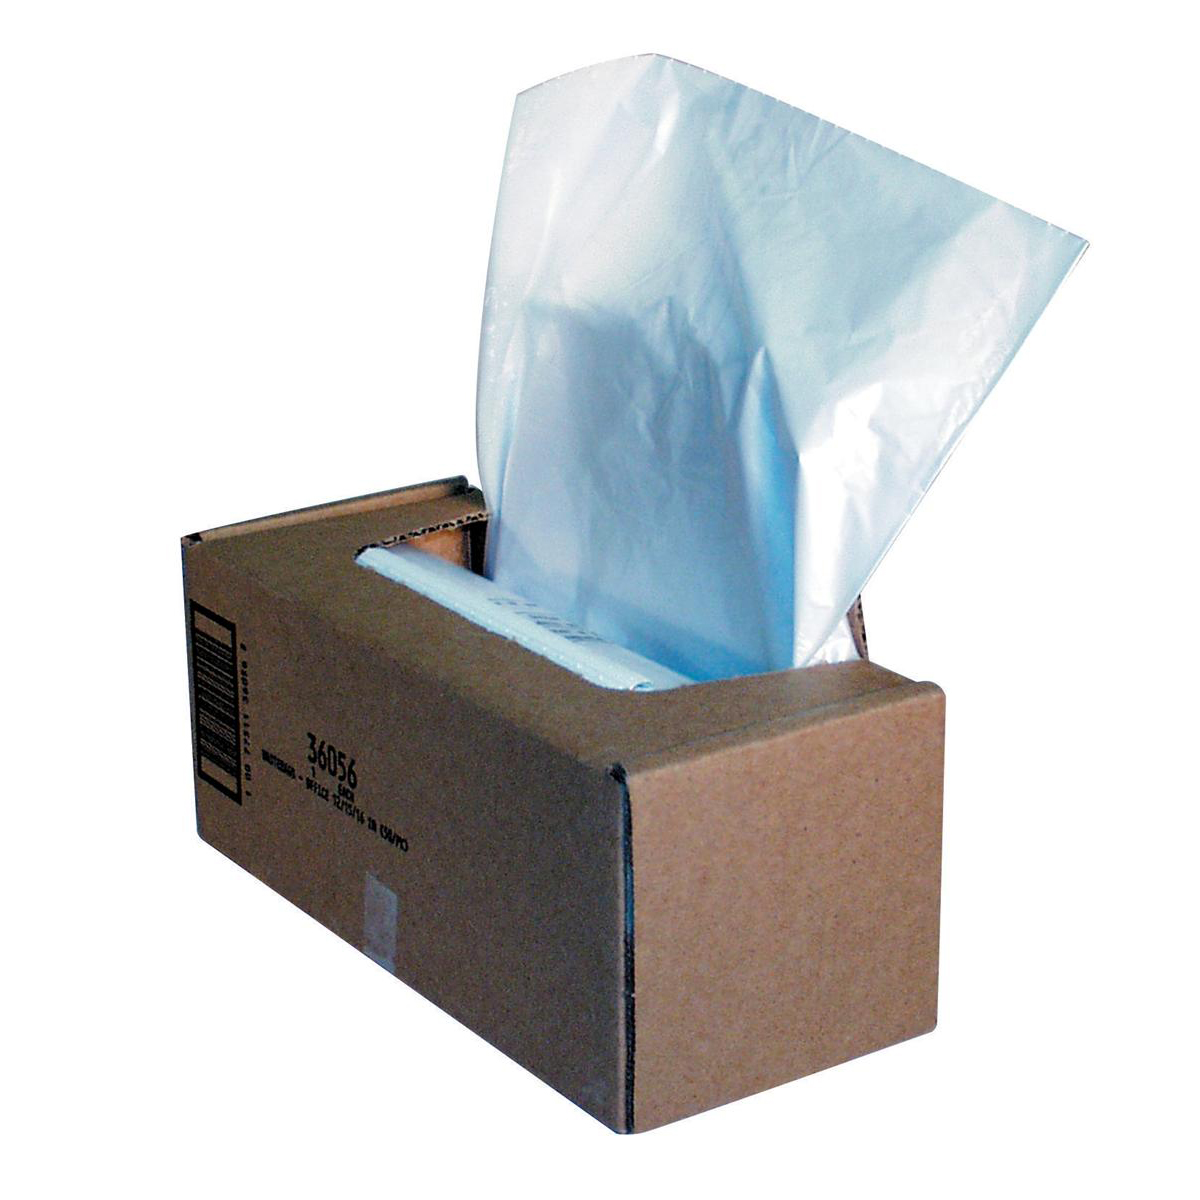 Bags / Sacks Fellowes Shredder Bags Capacity 94 Litre for C-320 C-420 Series Ref 36056 Pack 50